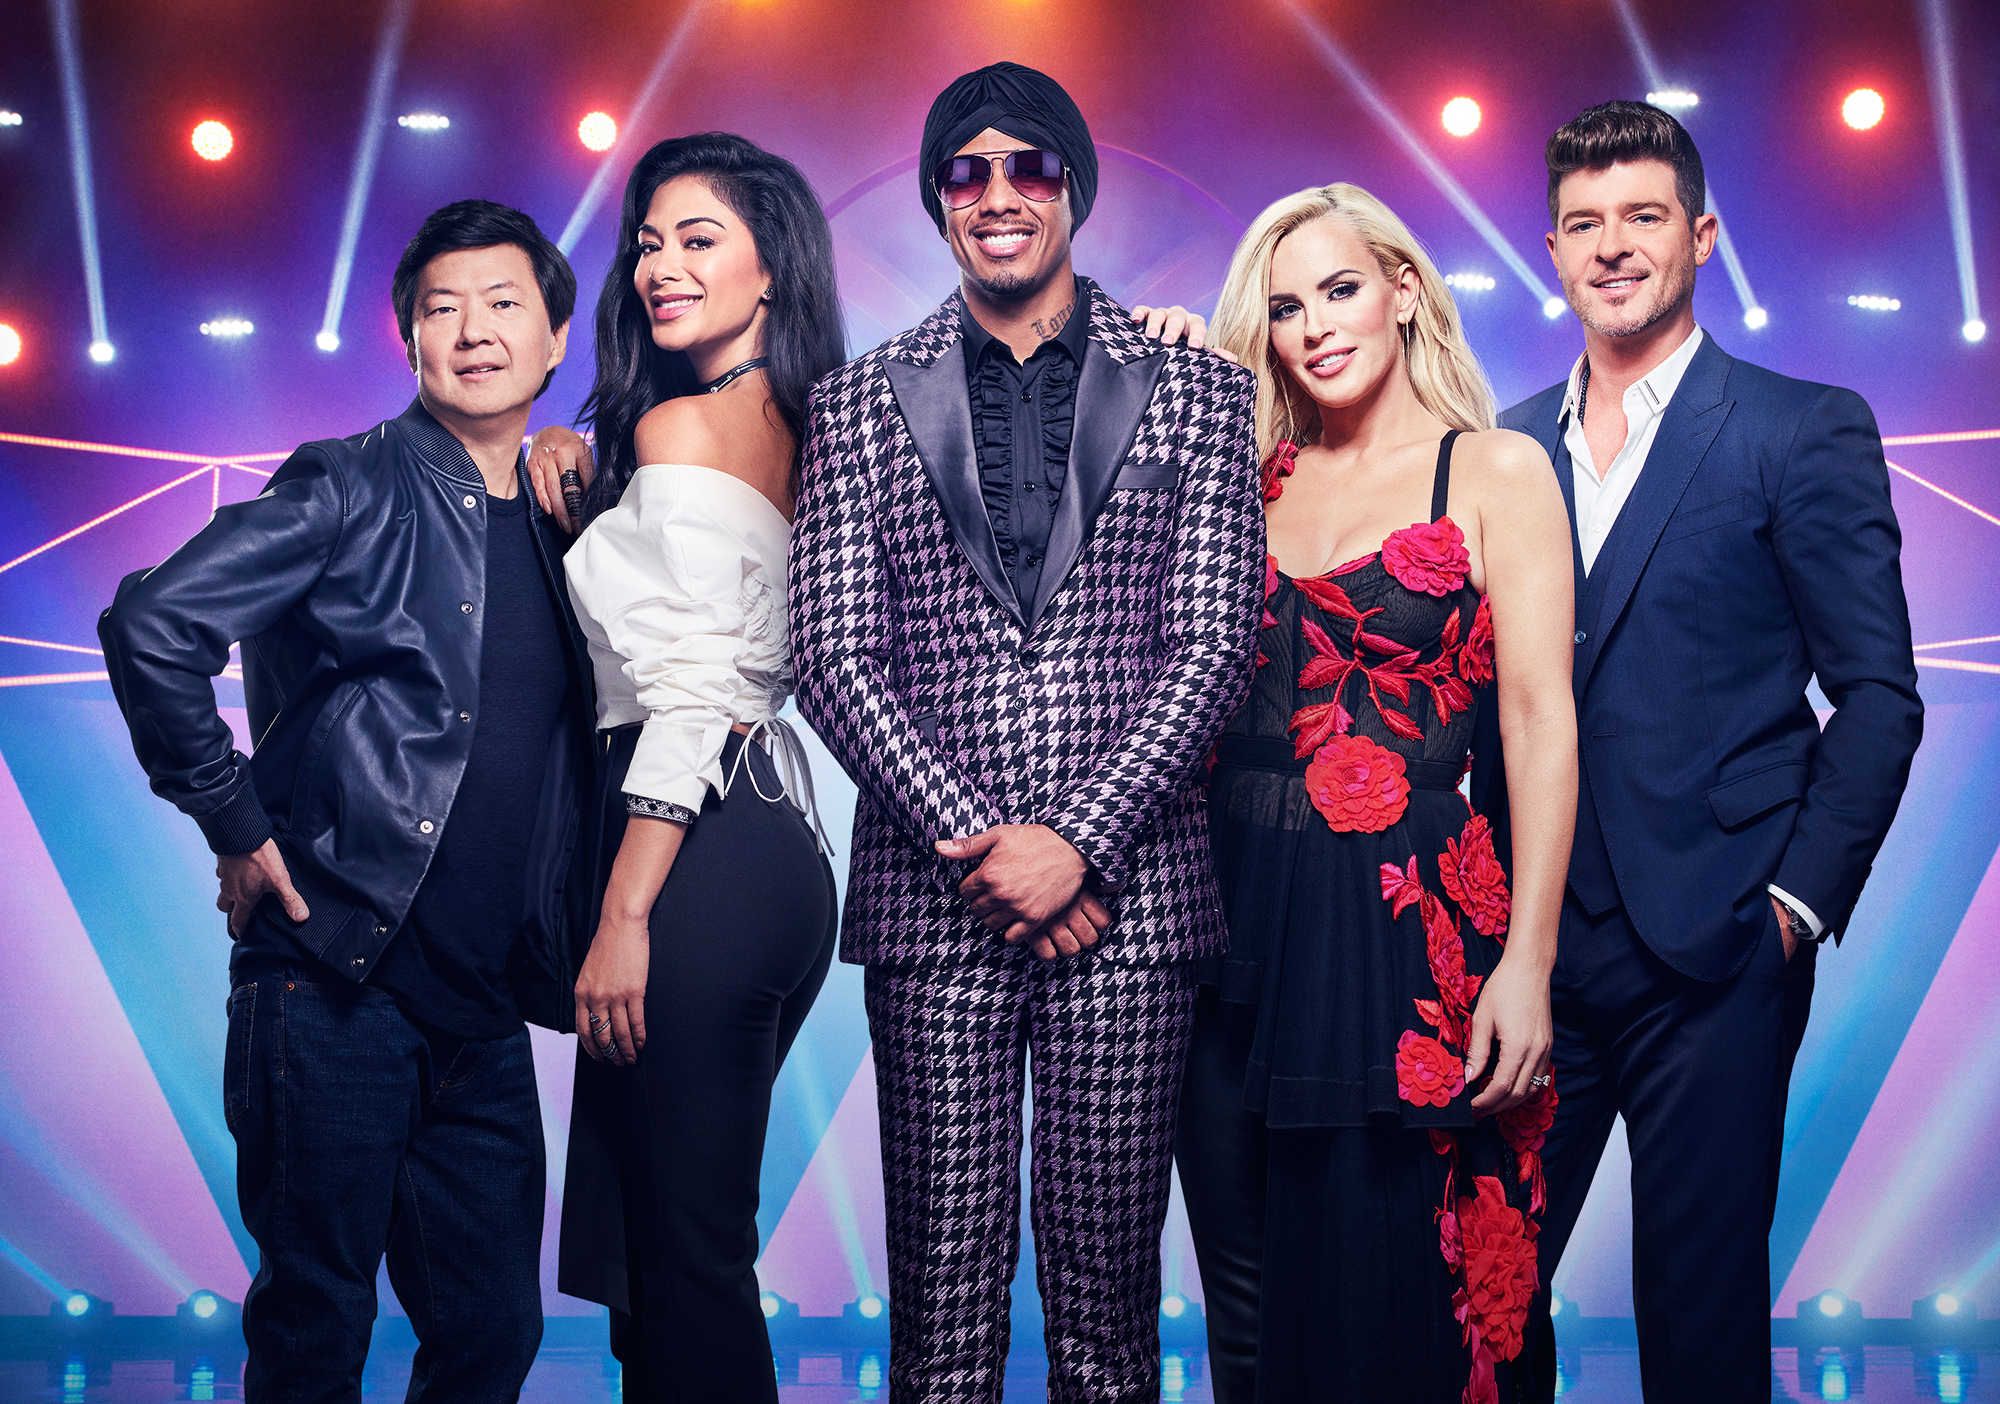 the-masked-singer - Ken Jeong, Nicole Scherzinger, Nick Cannon, Jenny McCarthy and Robin Thicke in THE MASKED SINGER